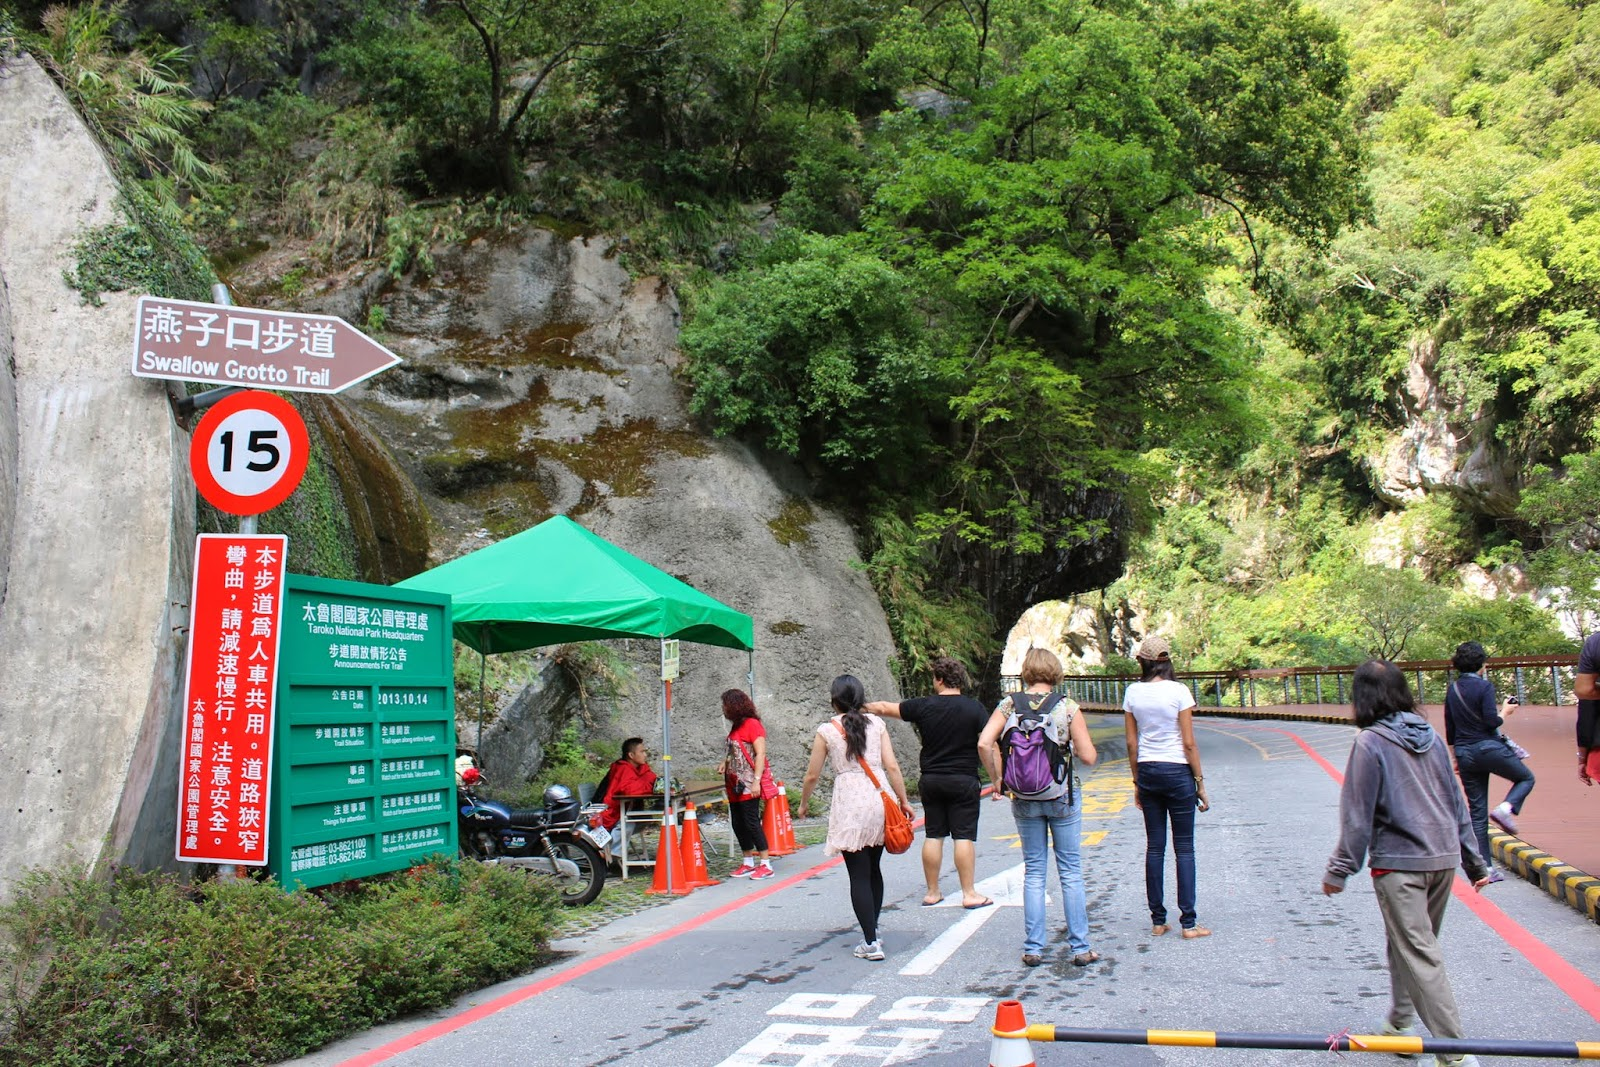 There are signs warning of the danger of rock falls, visitors myst wear helmets before heading to Swallow Grotto Trail at Taroko Gorge National Park in Hualien, Taiwan